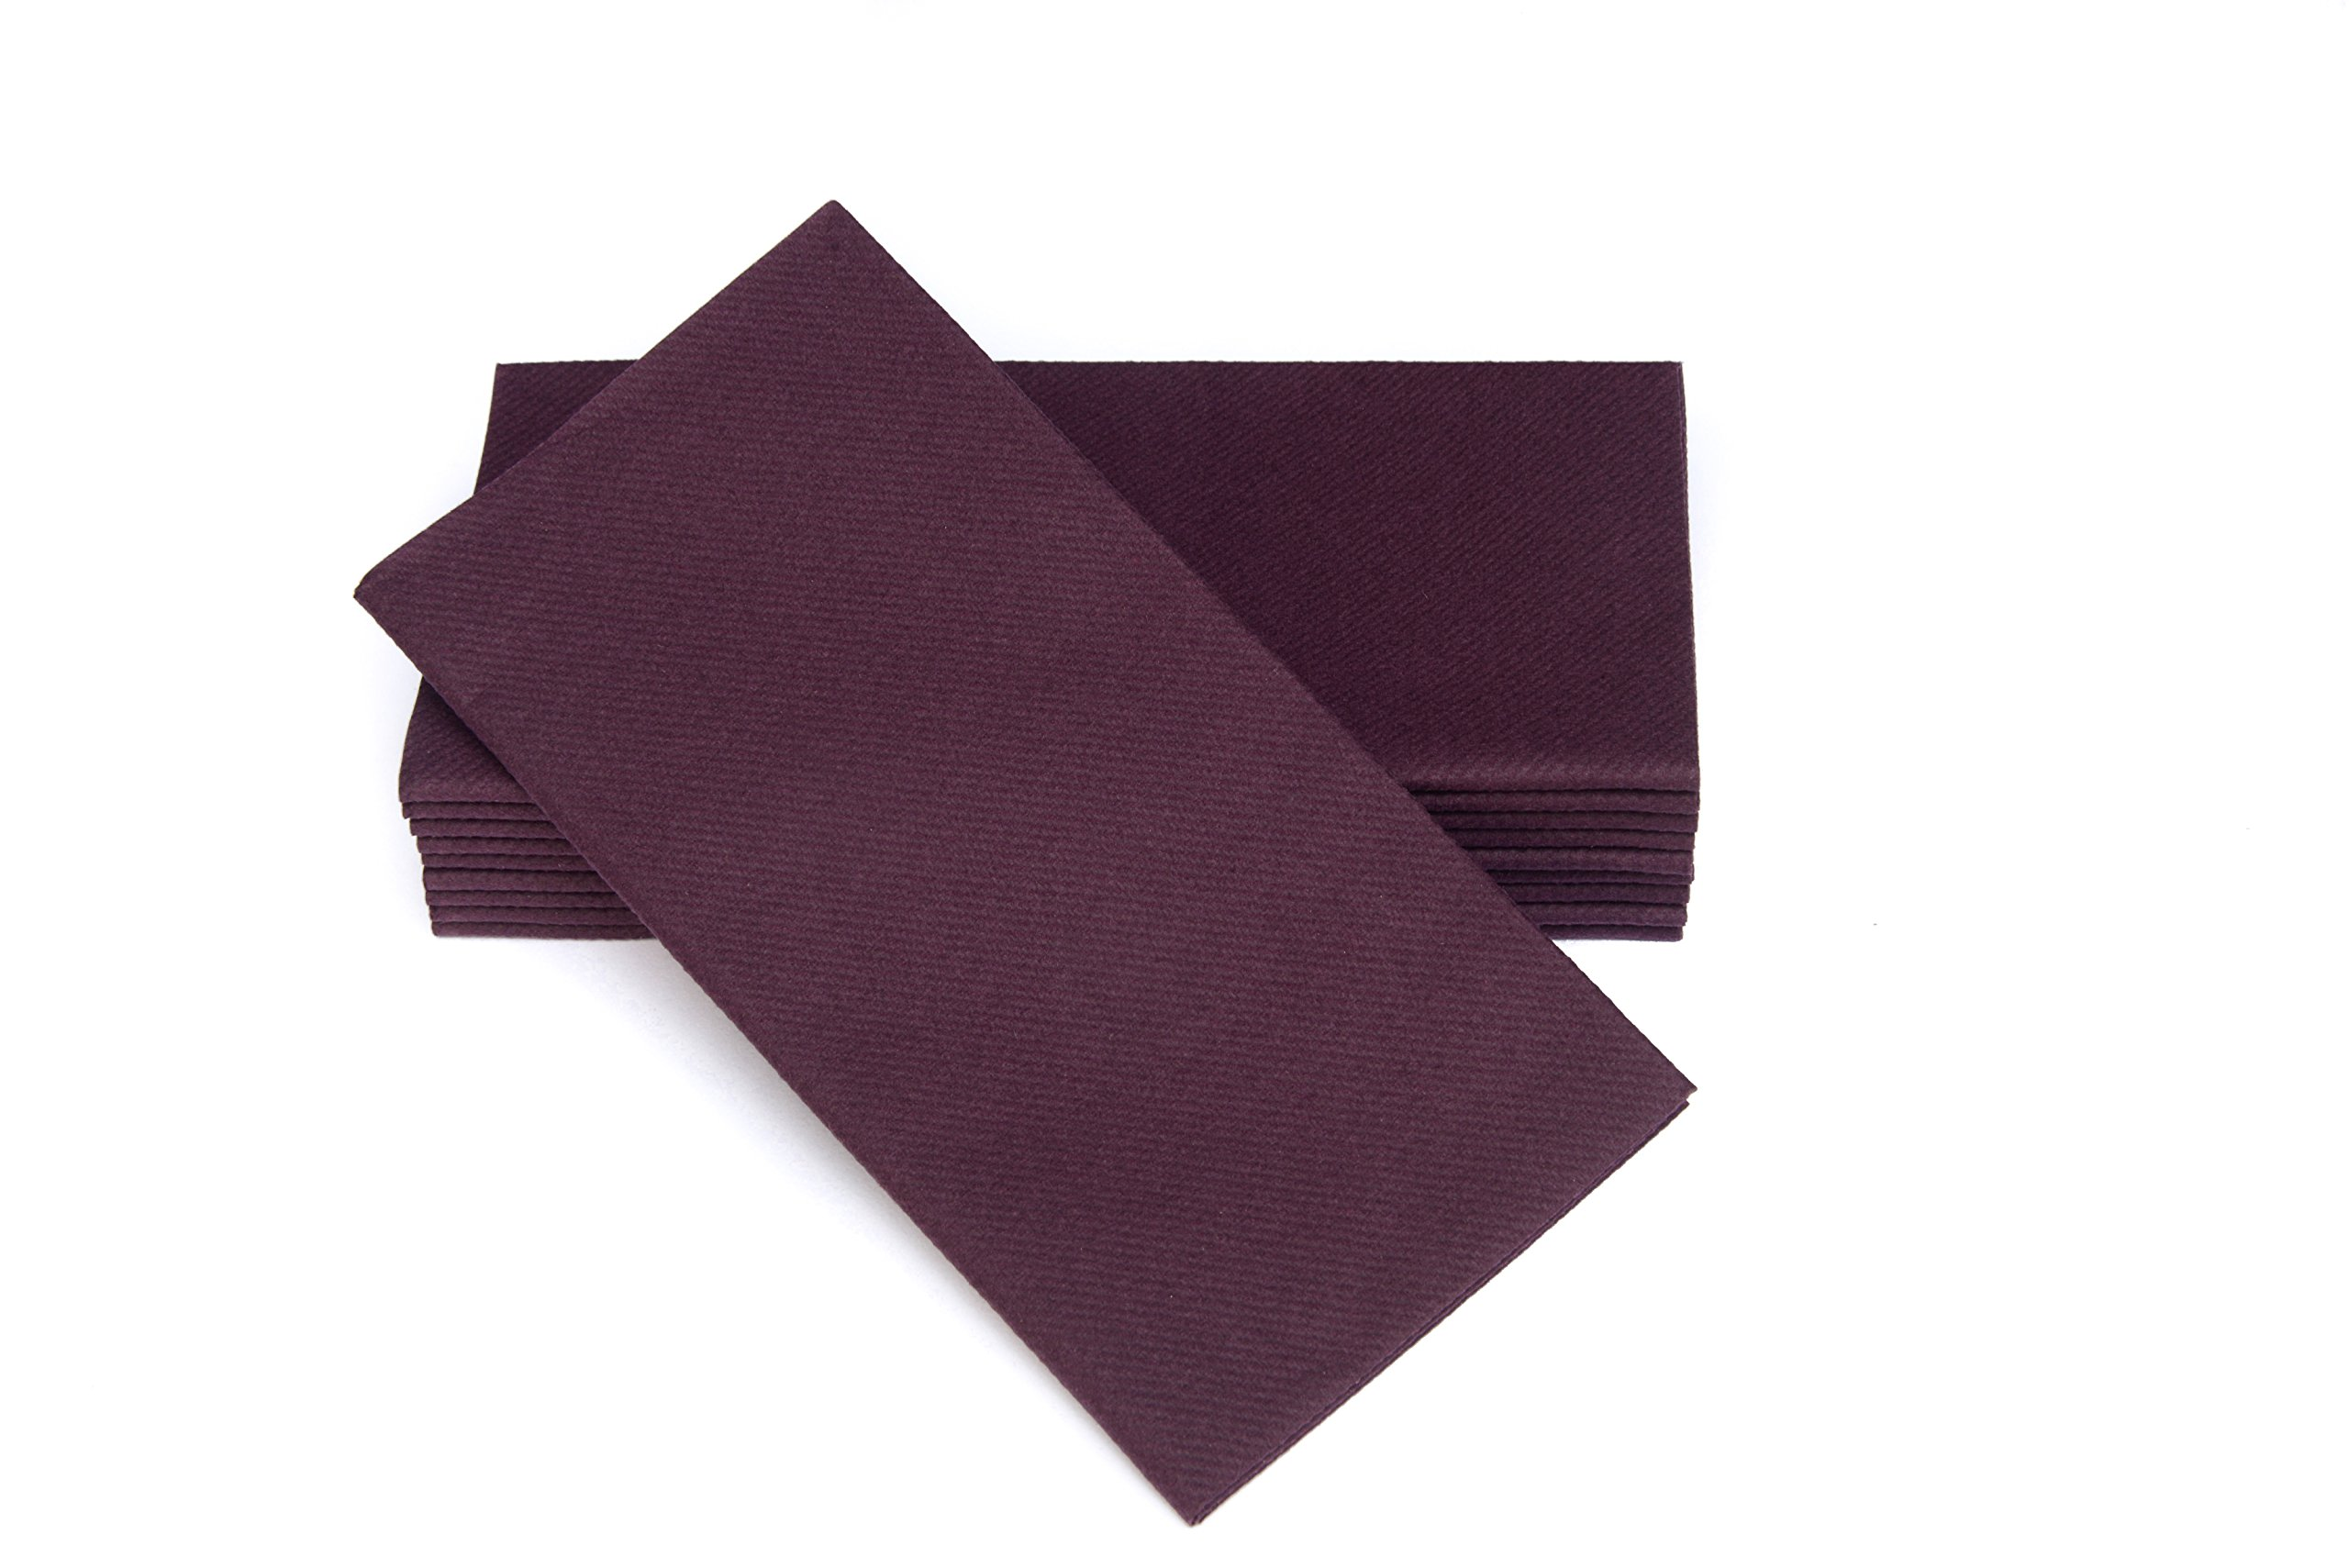 "Simulinen Dinner Napkins – Disposable, PLUM, Cloth-Like – Elegant, yet Heavy Duty Soft, Absorbent & Durable – 16""x16"" – Box of 50"